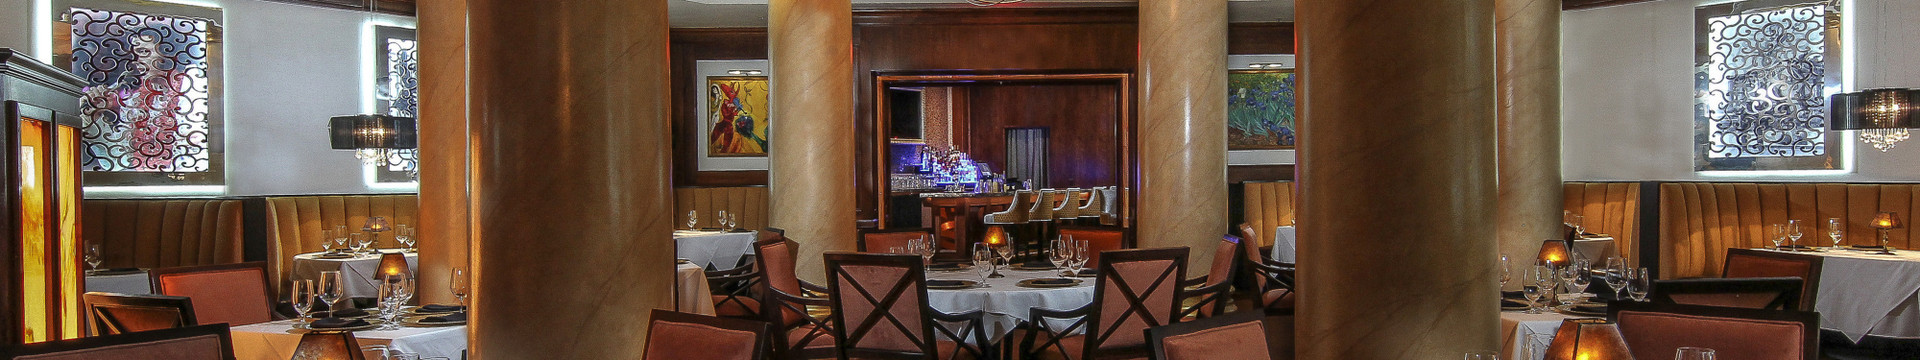 Dining at our Las Vegas Hotel and Casino | Edge Steakhouse